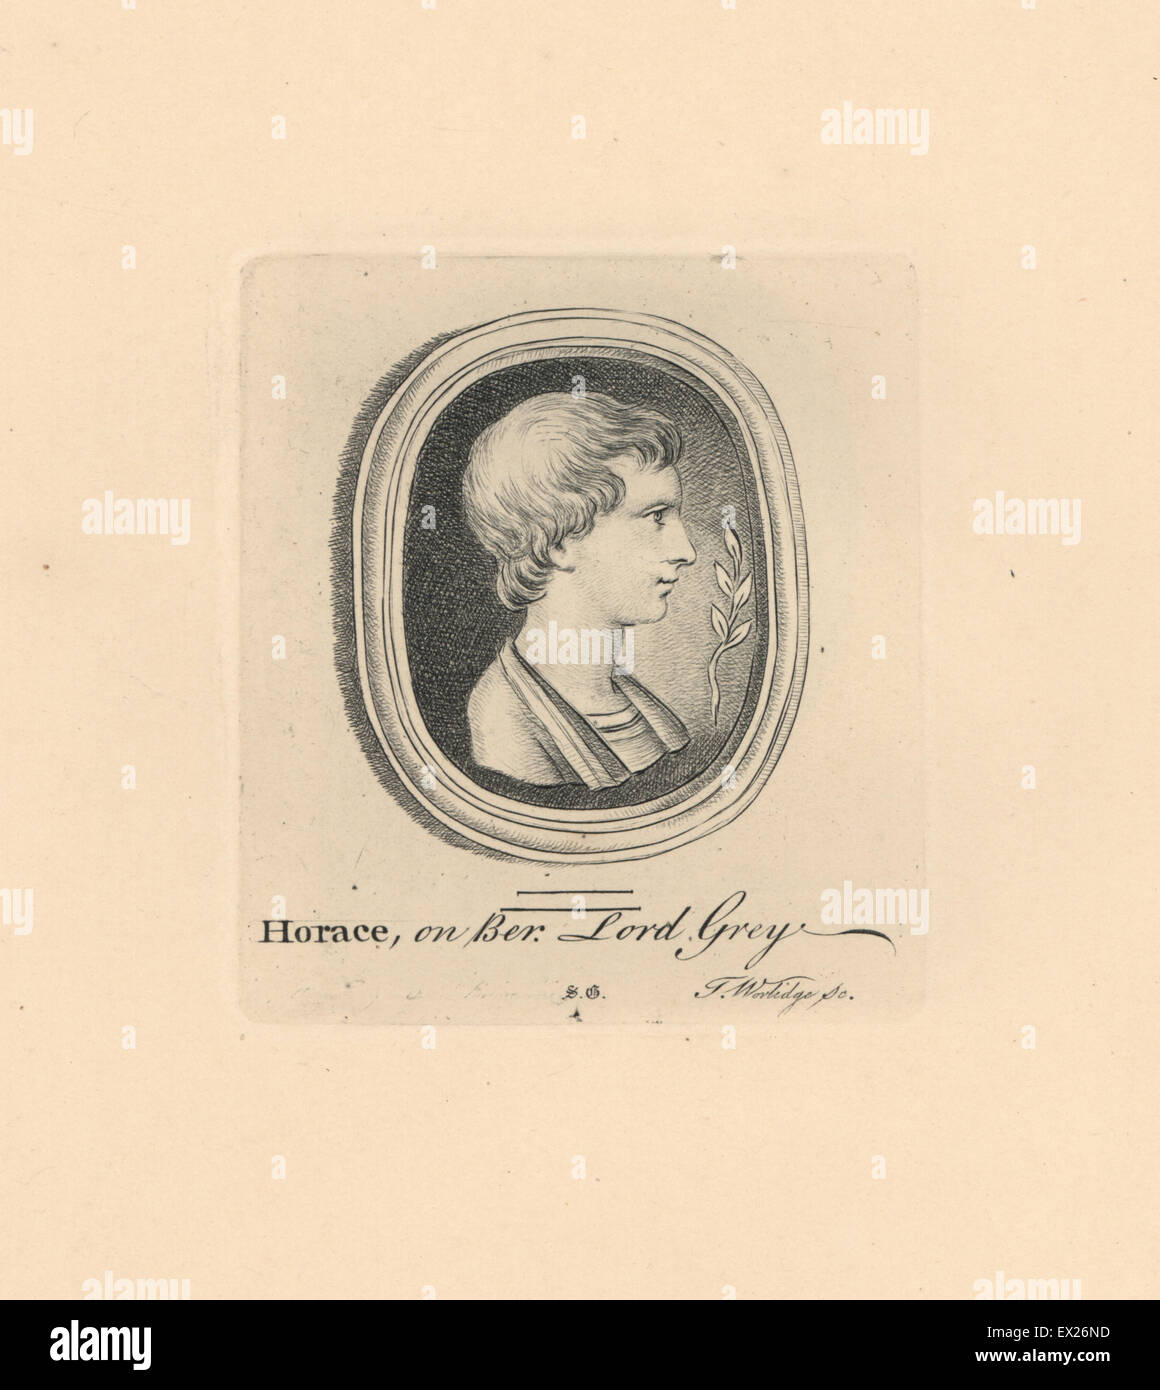 Portrait of Horace, Roman poet, on beryl from Lord Grey's collection. Copperplate engraving by Thomas Worlidge - Stock Image